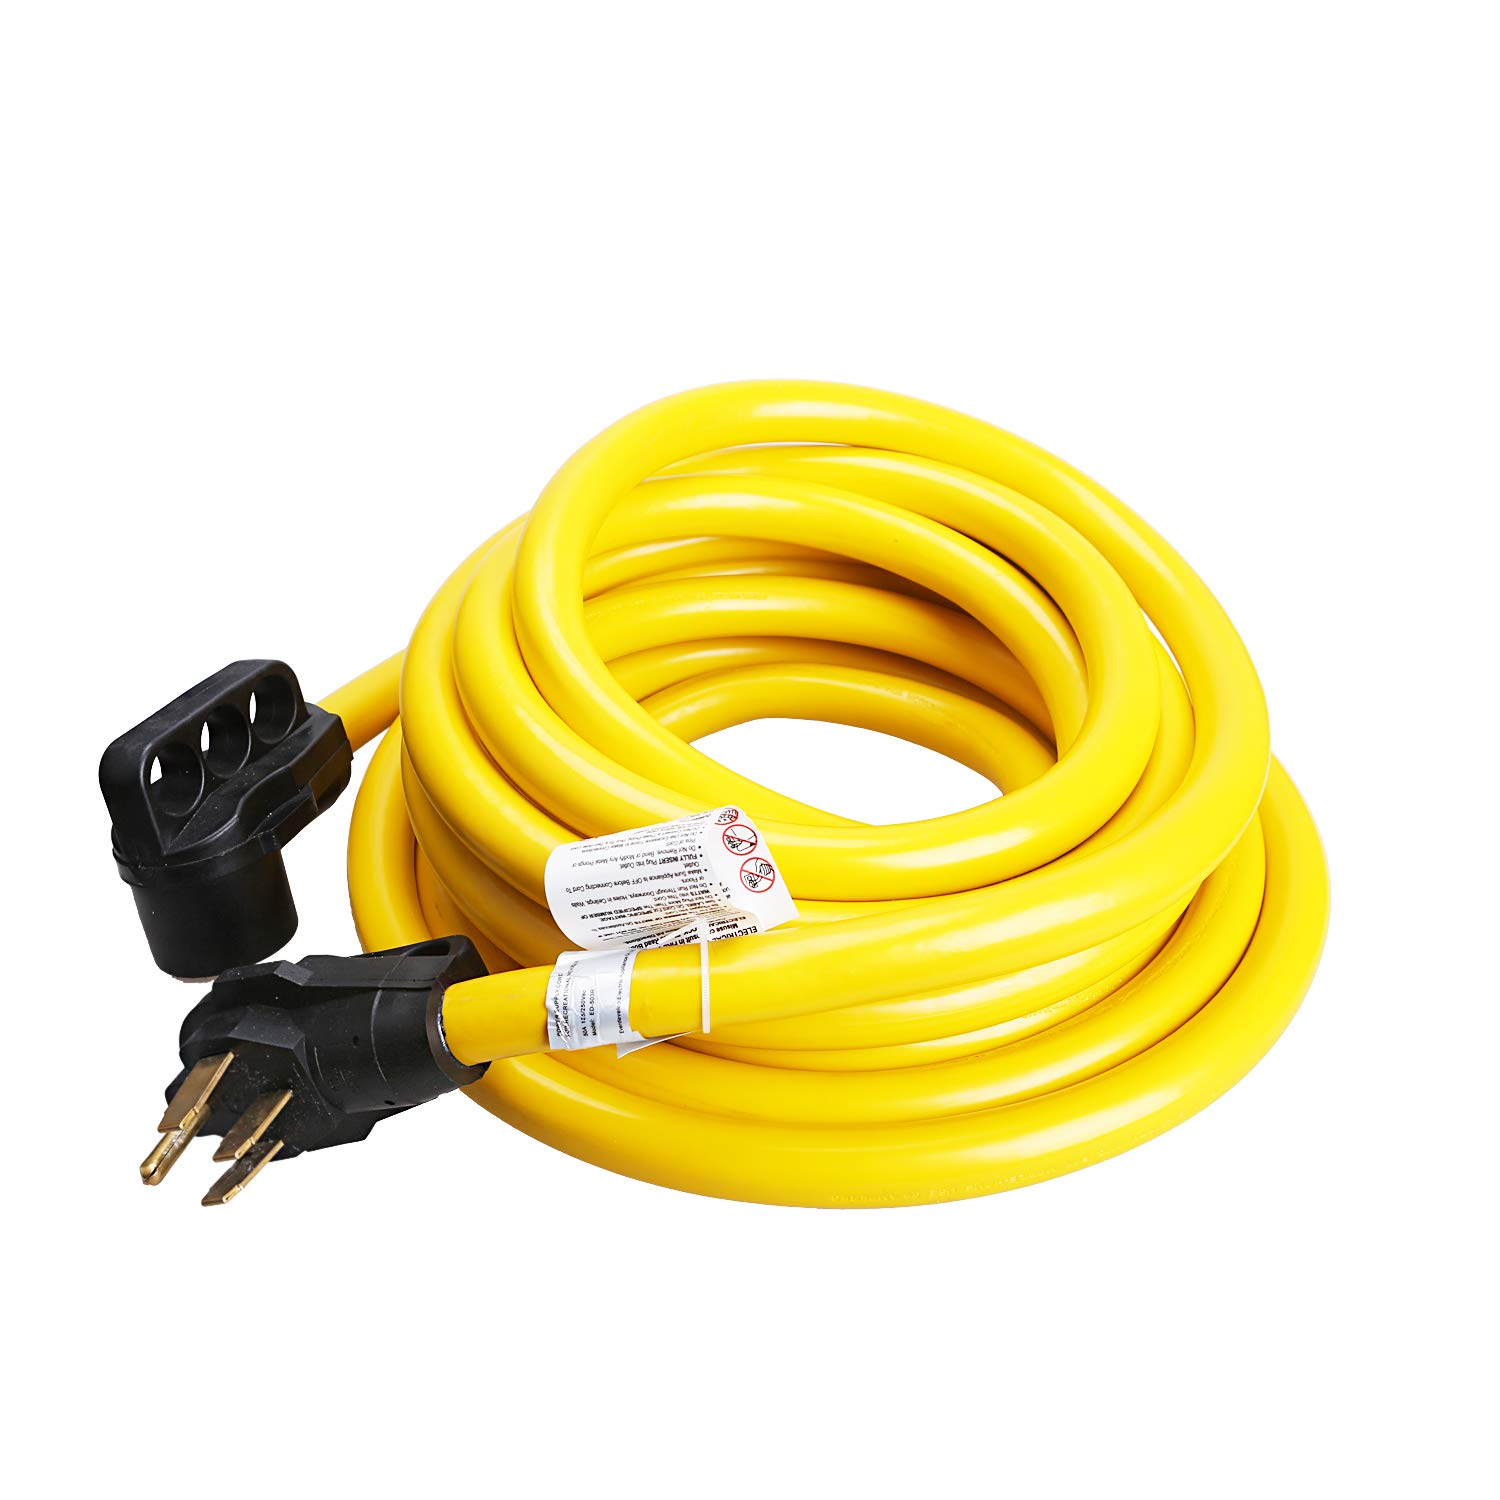 RV 30 Ft 50 Amps RV Power Extension Cord with Grip Handle